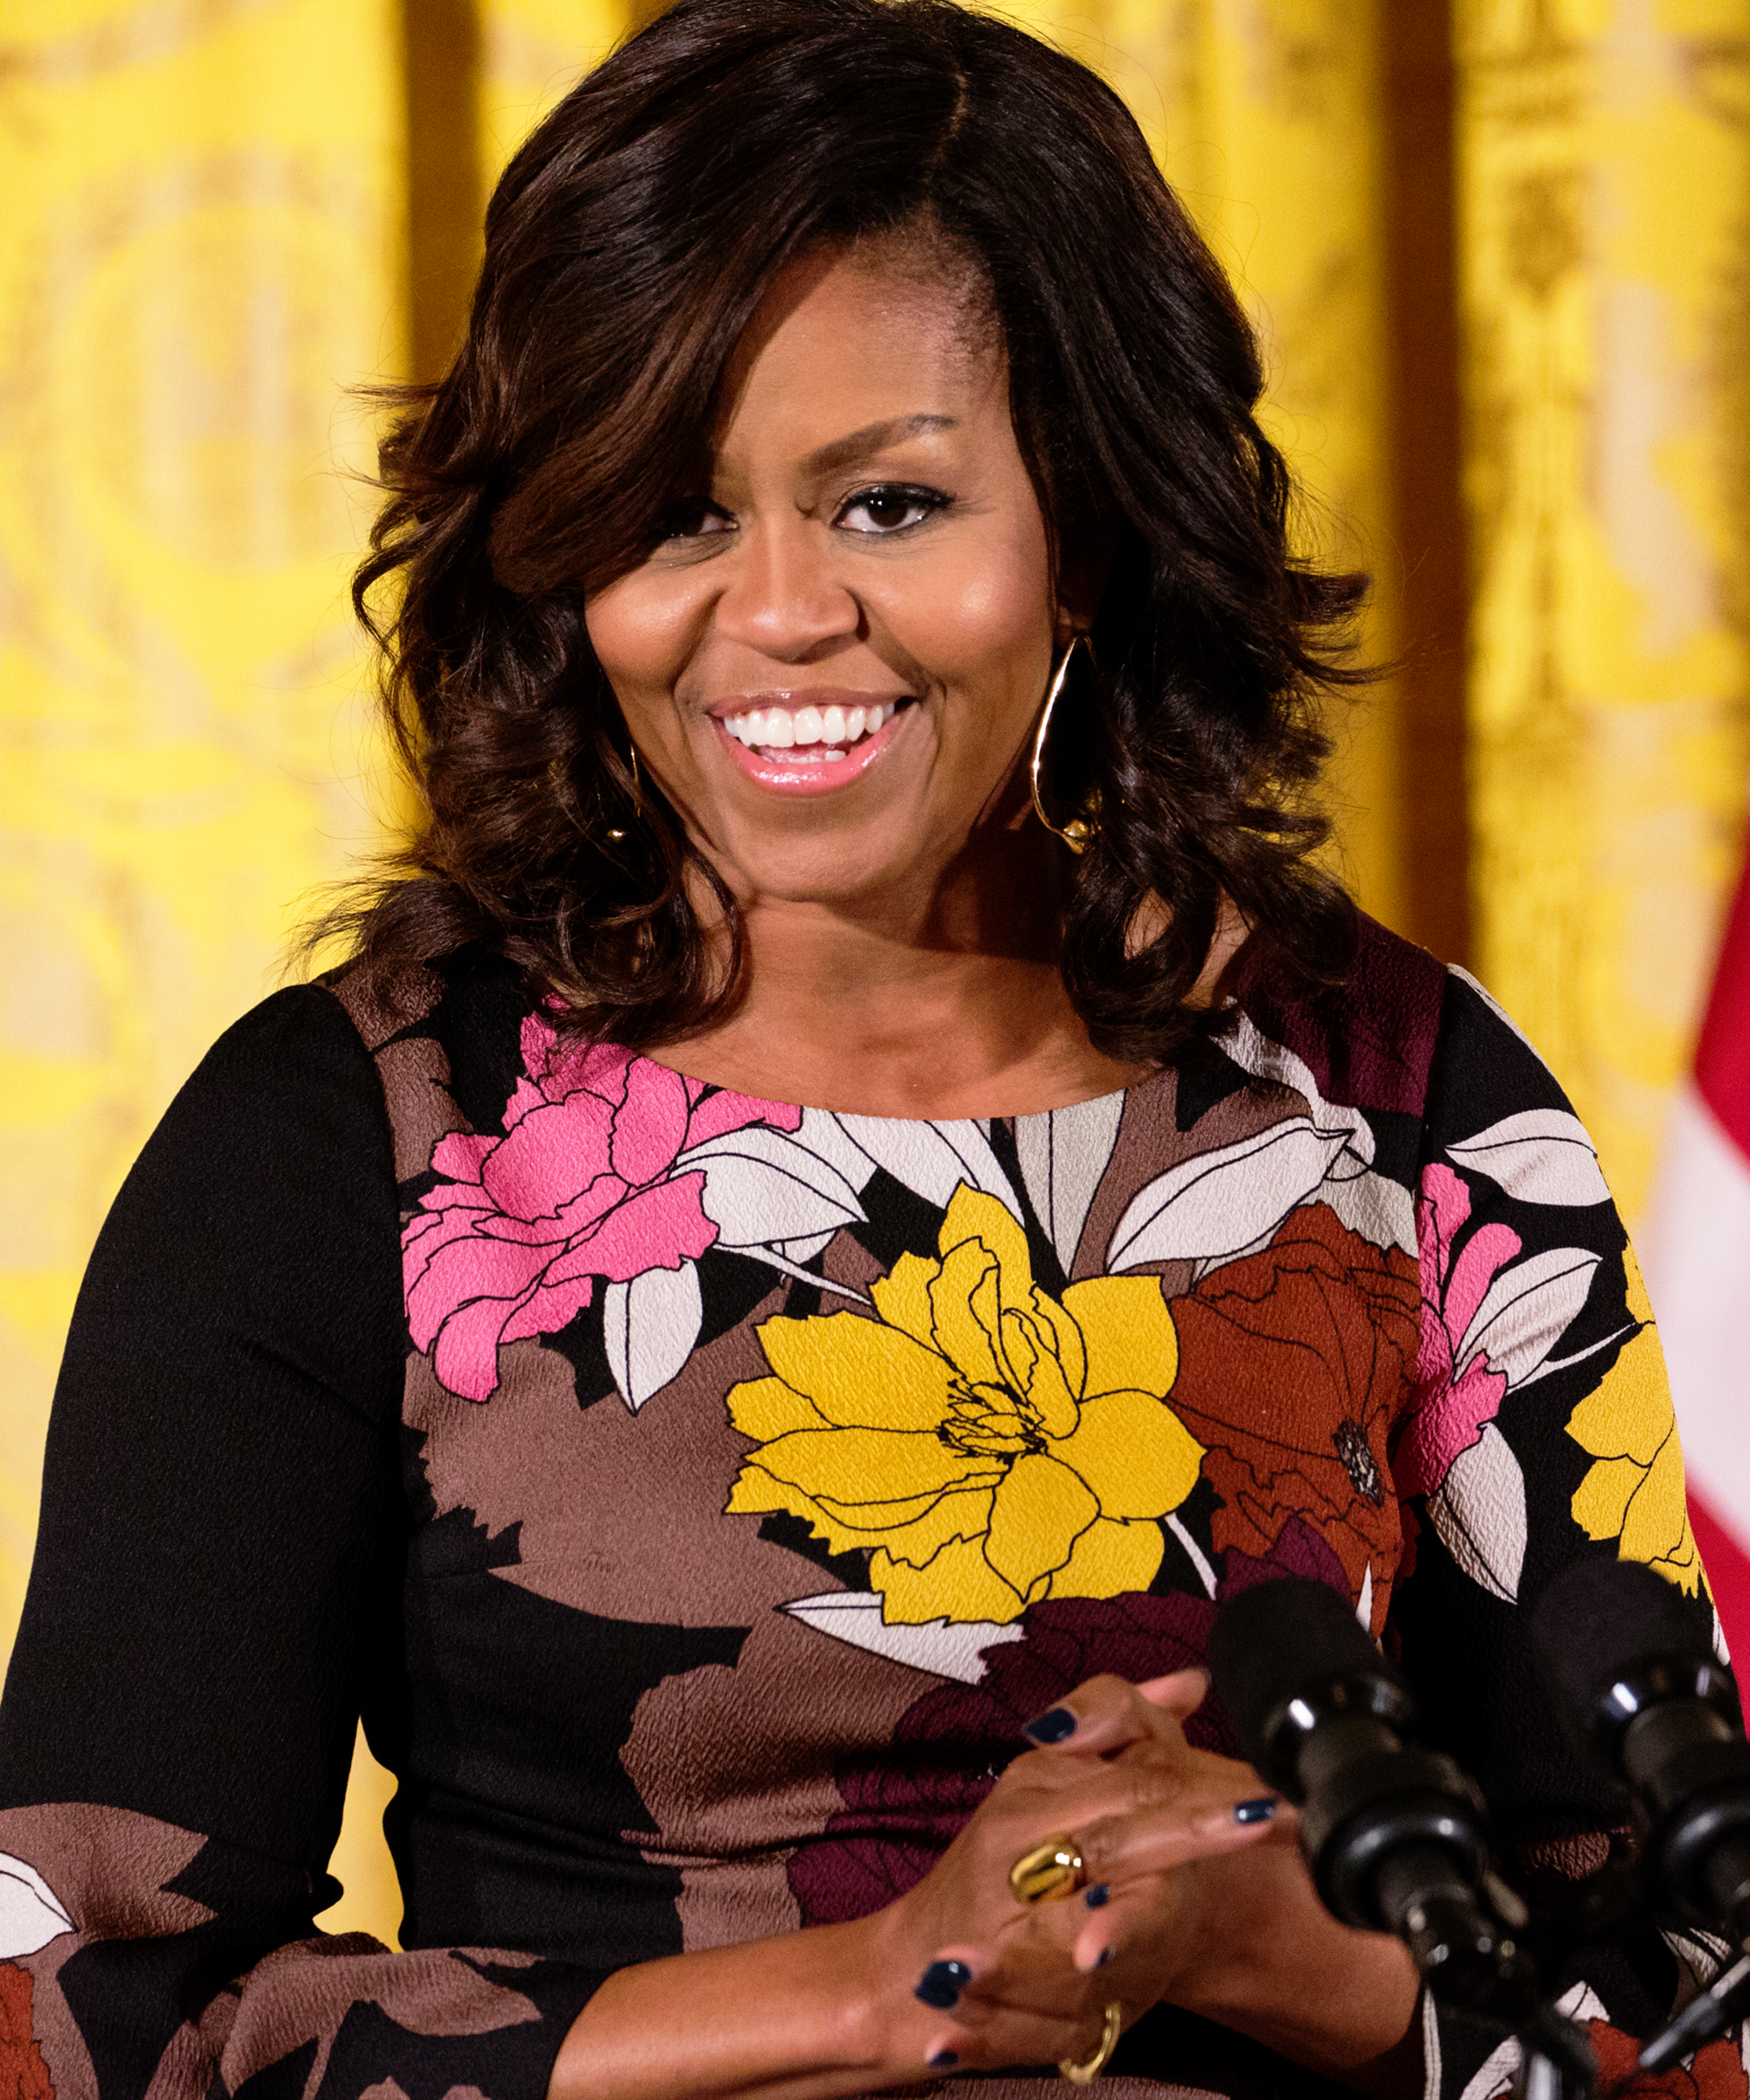 michelle obama natural hair curls meaning johnny wright